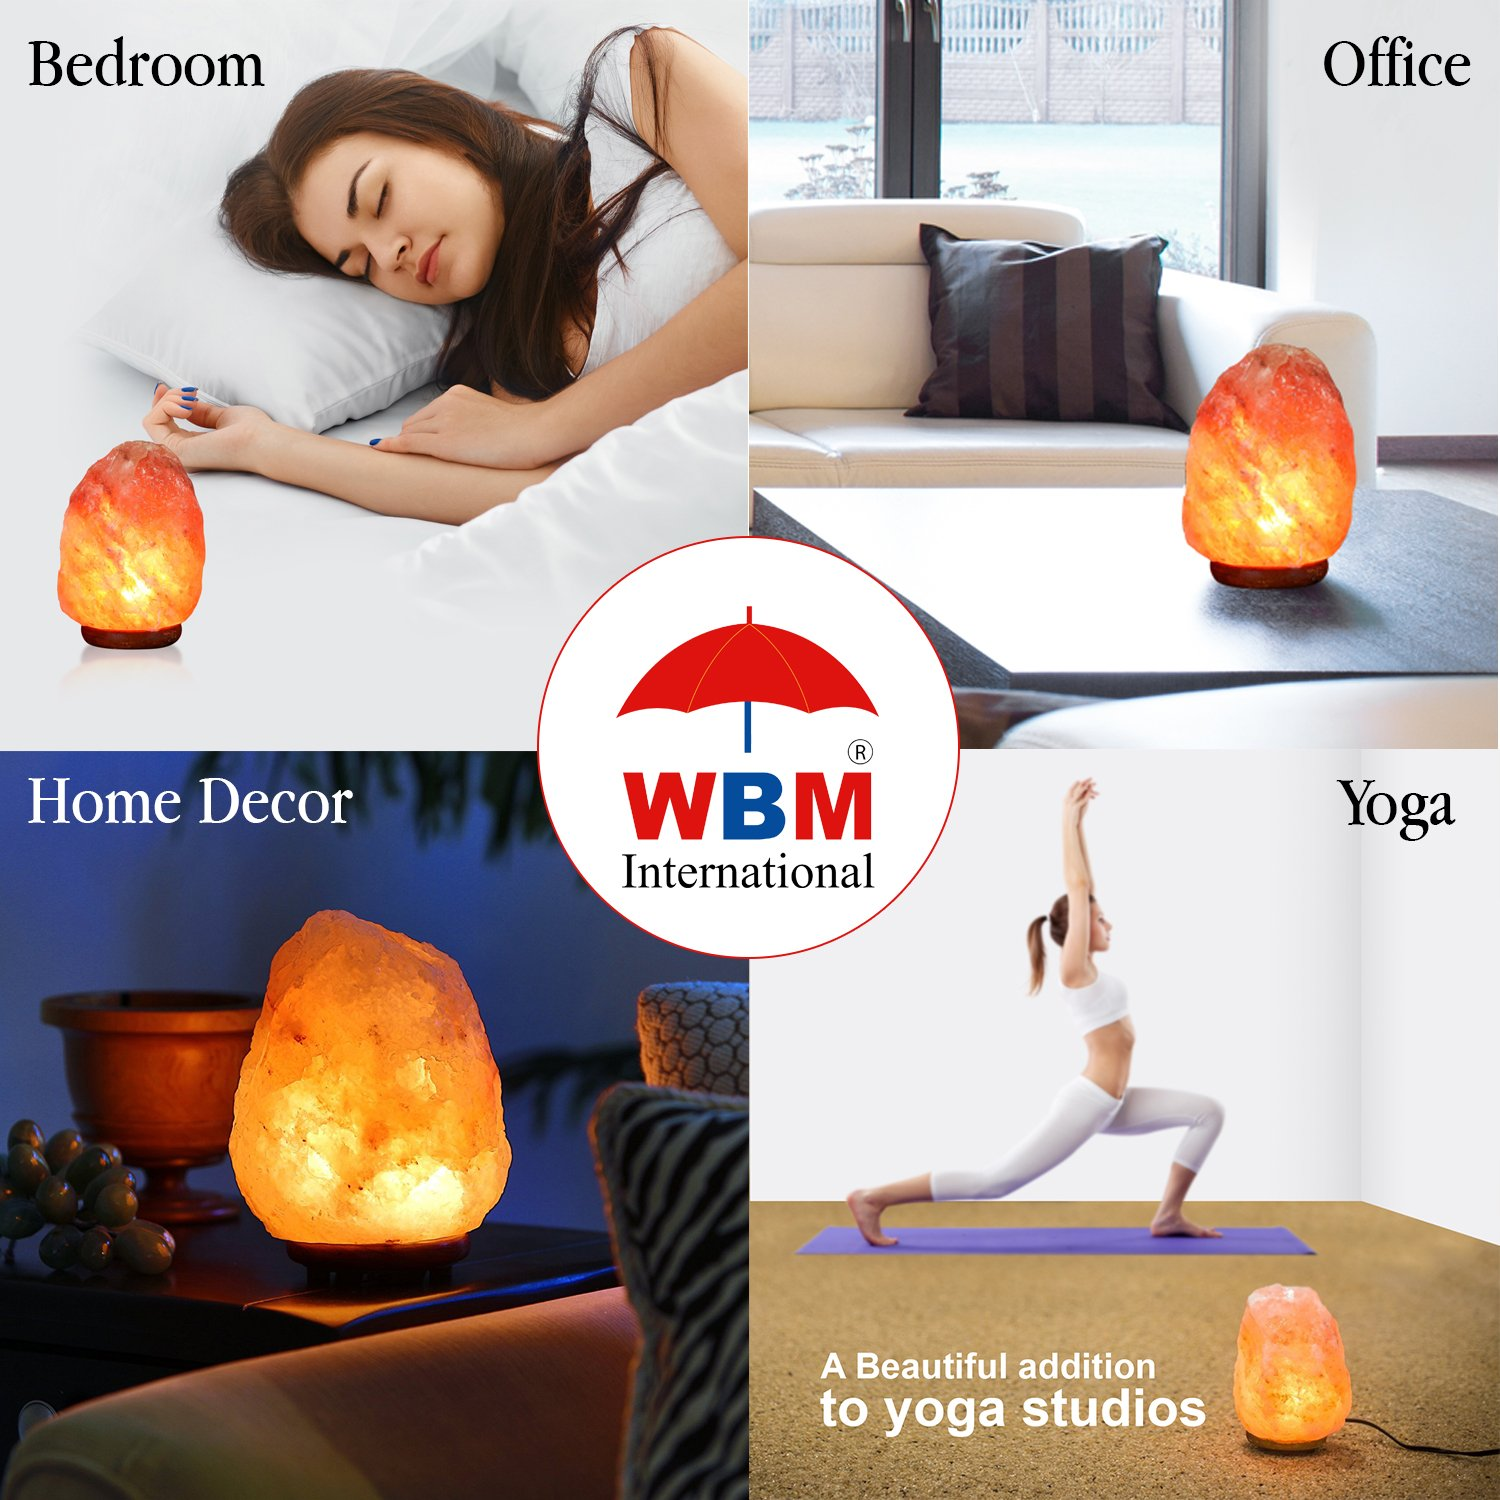 Himalayan Glow Salt Lamp, 1003 Extra large himalayan salt lamp, Dimmable Floor lamp with Neem Wooden base   11 to 15 lbs by WBM by Himalayan Glow (Image #11)